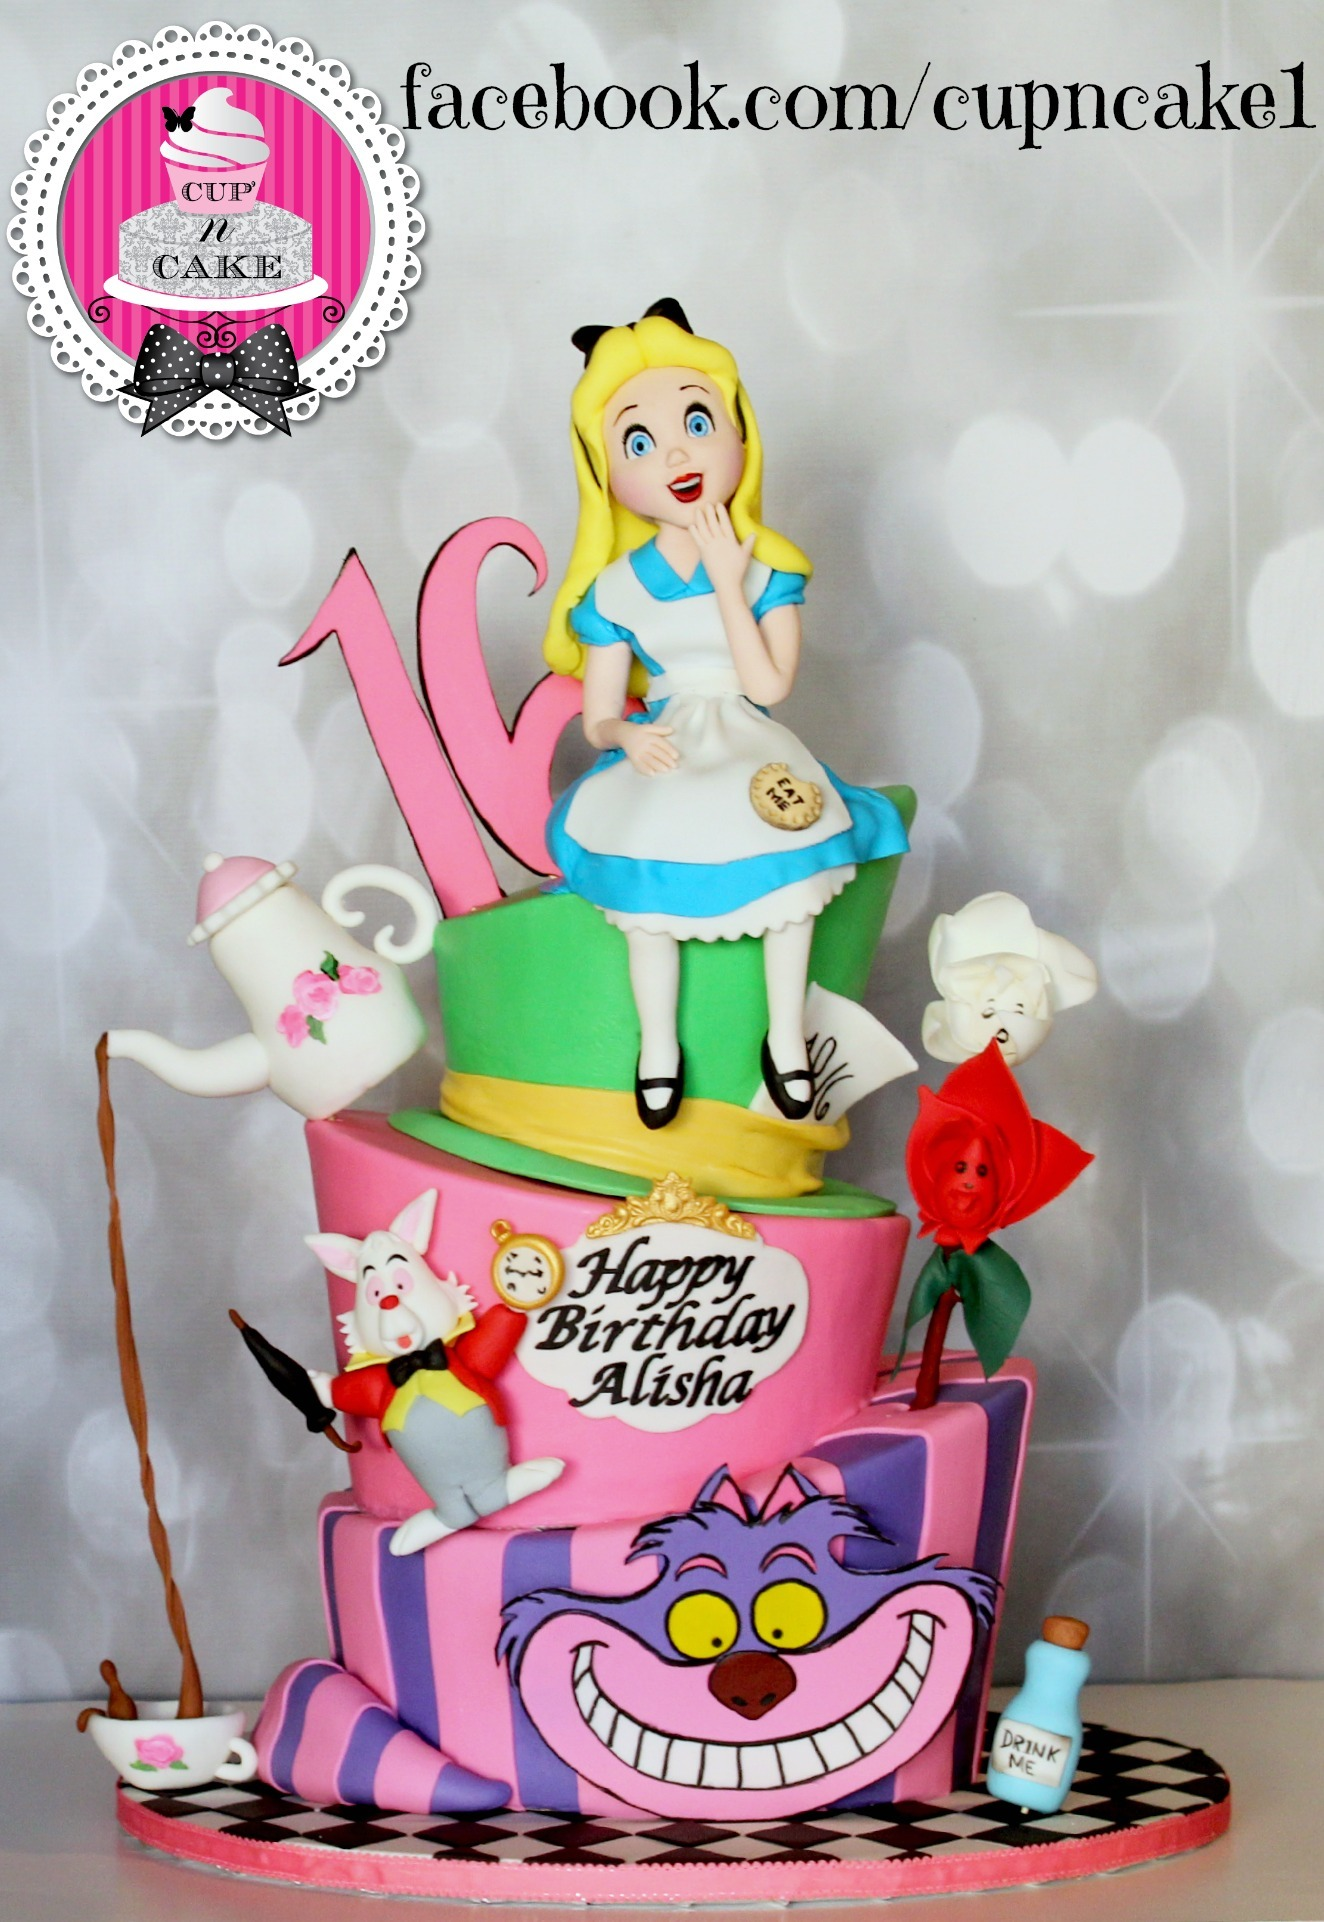 Topsy Turvy Alice in Wonderland Cake